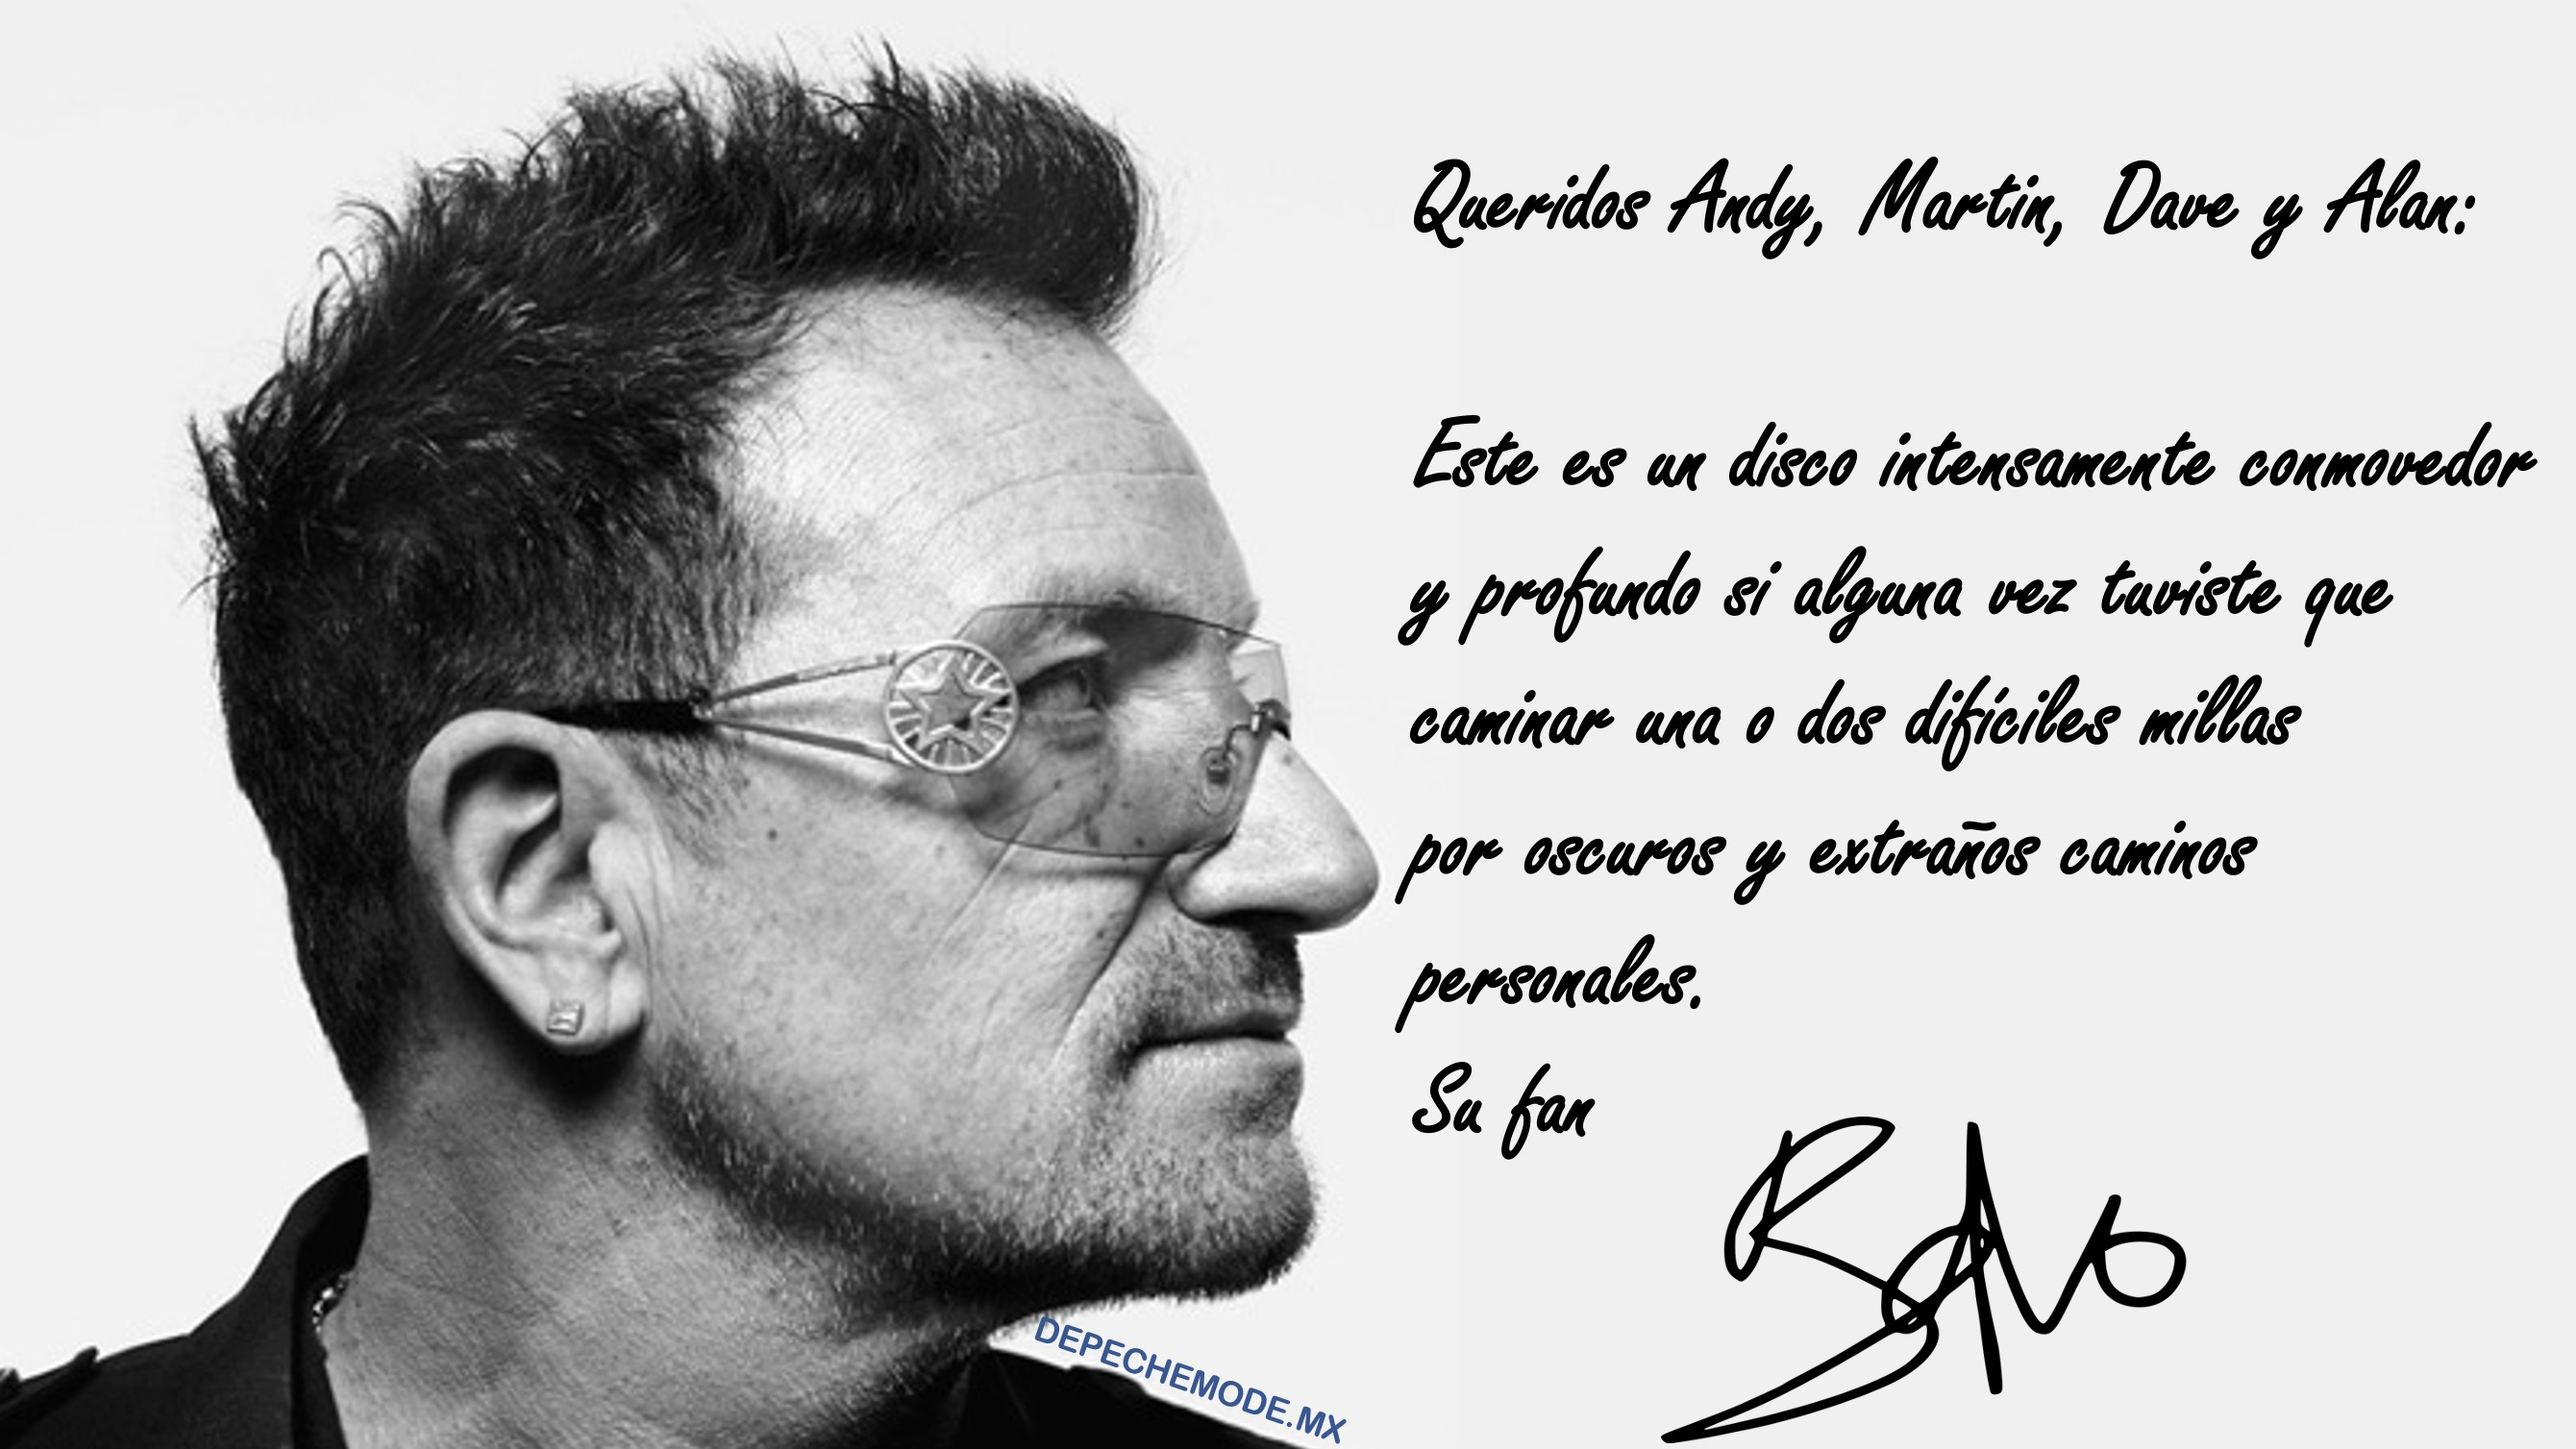 CARTA BONO U2 A DEPECHE MODE